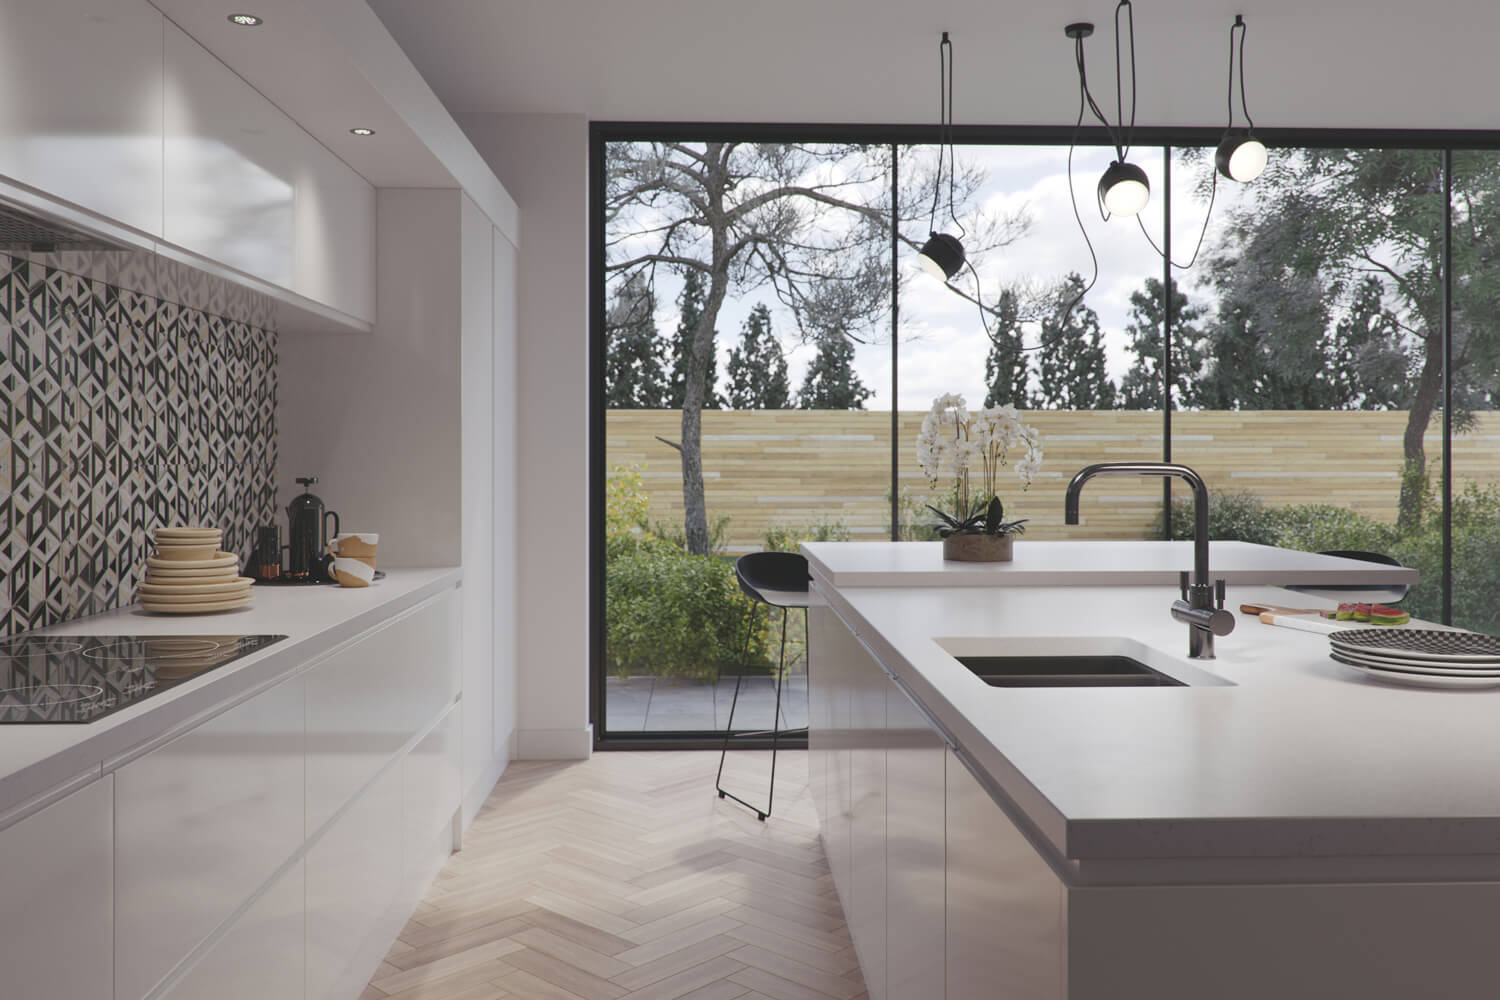 Amazing traditional kitchen 3D rendering showing tap product CGI - smooth white counter tops and pale colour scheme, with large windows in the background showing the garden.